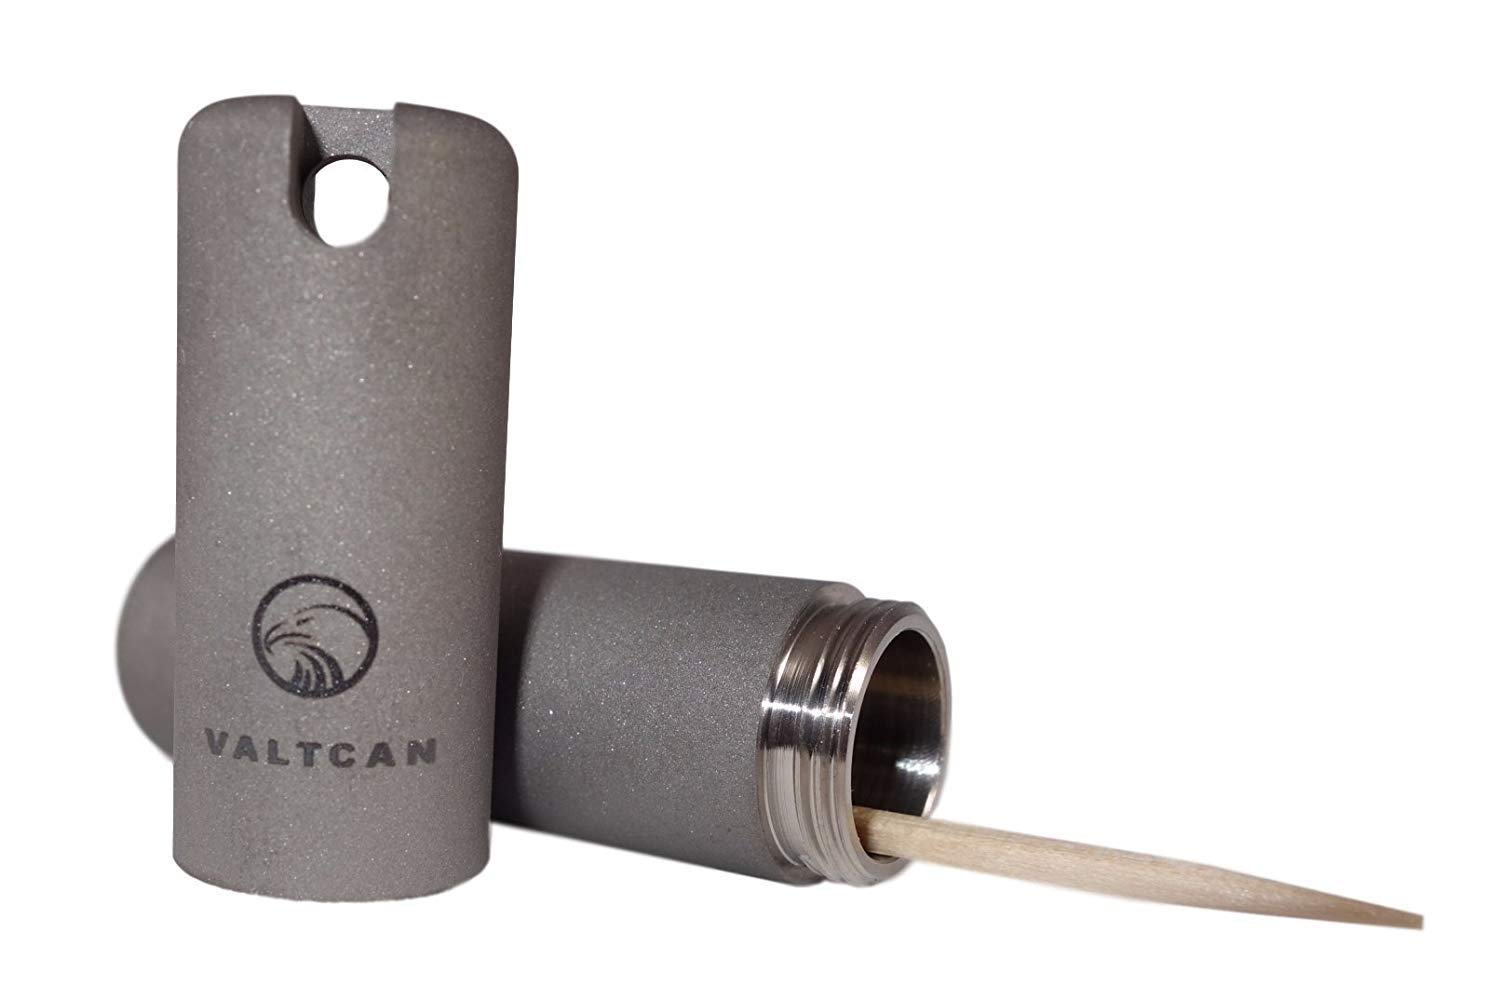 TOOTHPICK HOLDER Titanium Pill Canister Keychain VALTCAN Pocket Design